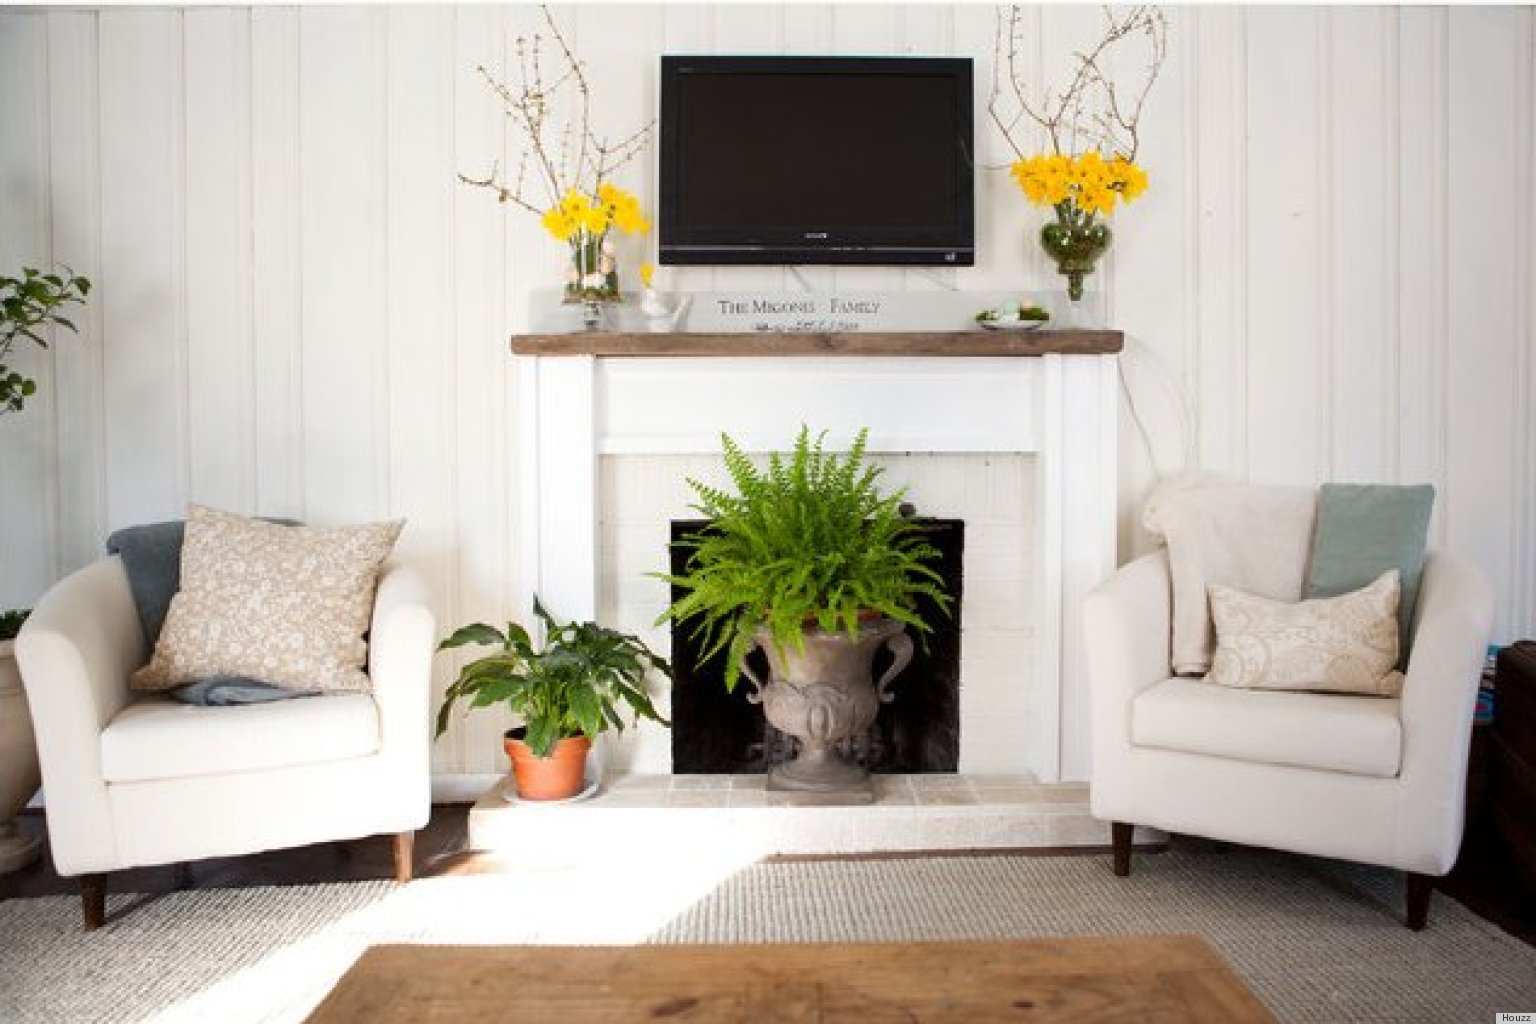 Http Www Huffingtonpost Com 2013 06 10 Decorate Fireplace In Summer N 3416044 Html